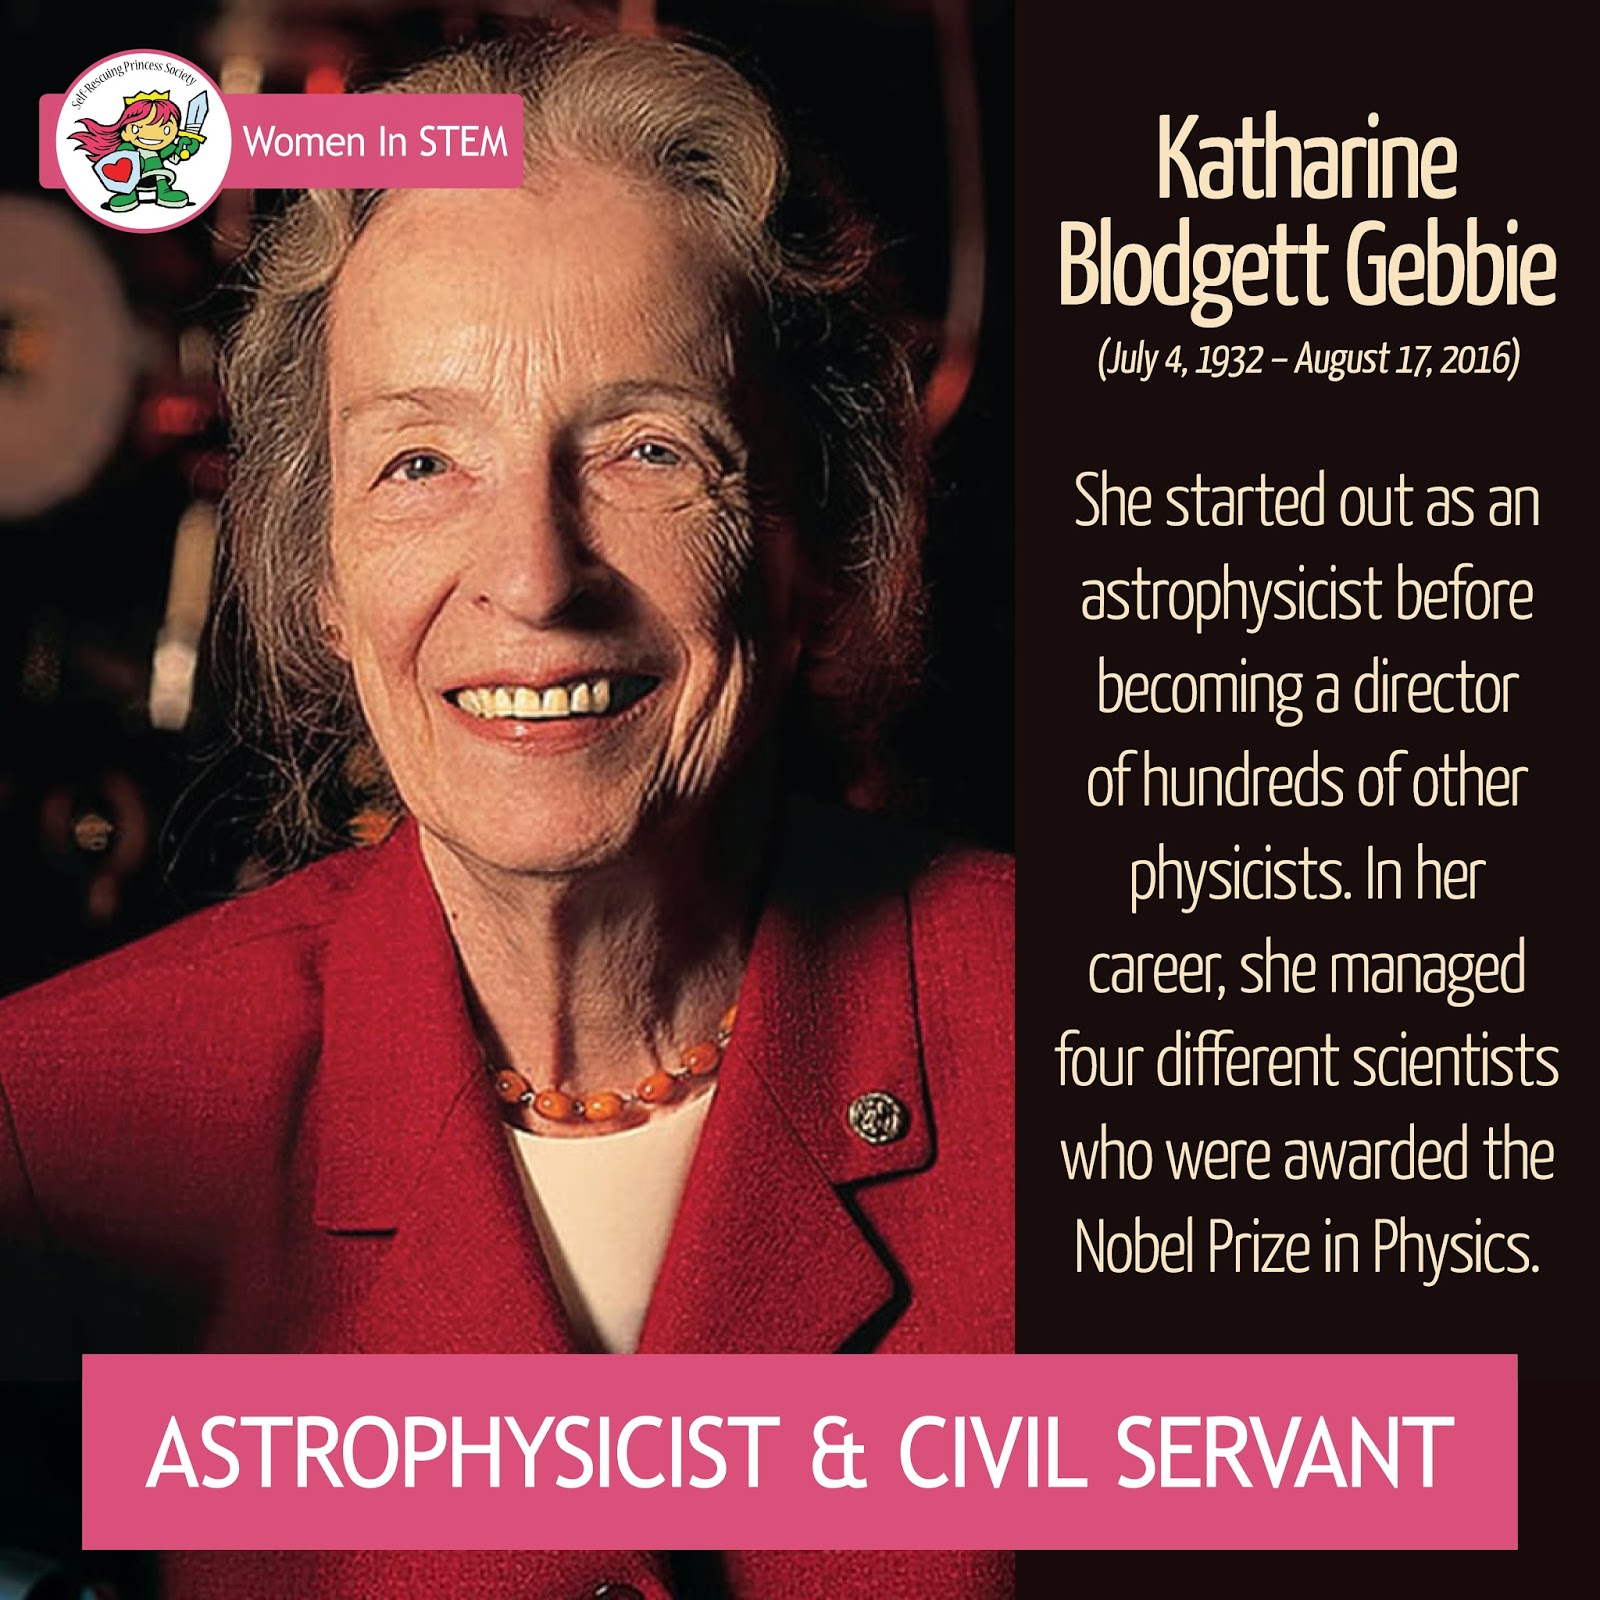 As A Child She Was Inspired By Her Famous Aunt And Namesake Katharine Burr Blodgett Who The First Woman To Earn PhD From University Of